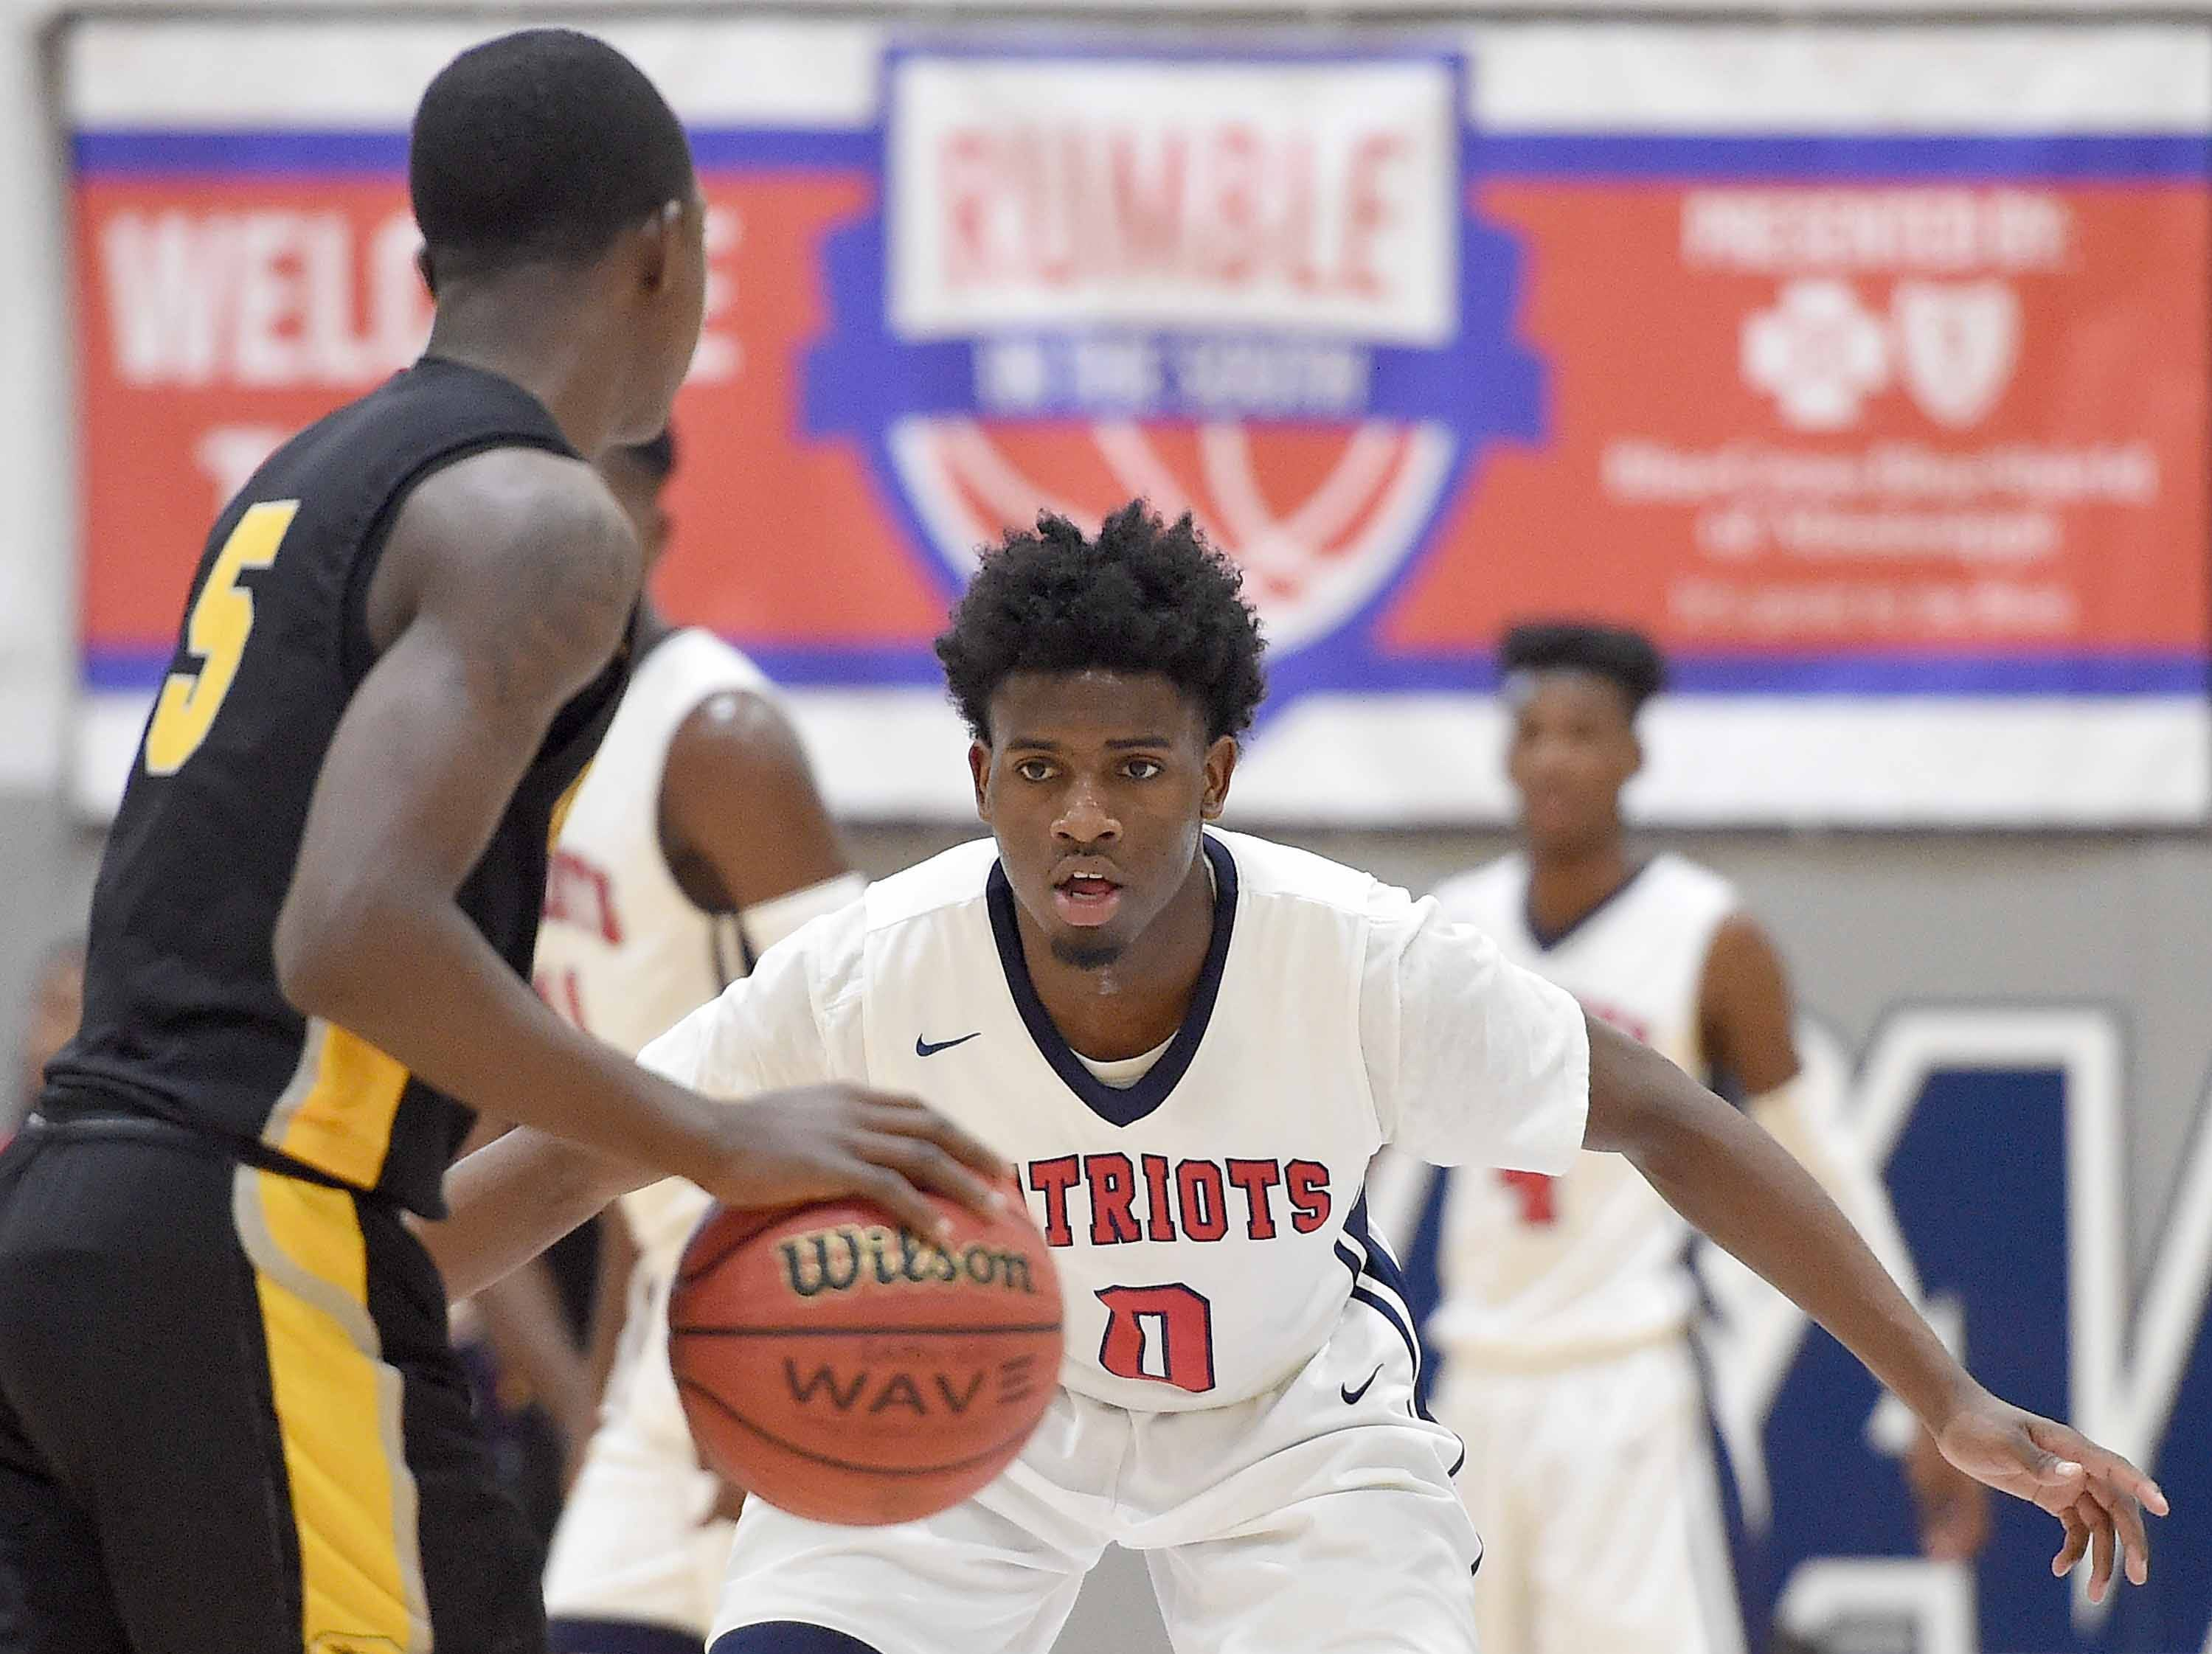 Forest Hill's Rodreekas Bush (0) defends Starkville's Forte Prater (5) on Monday, January 21, 2019, at the Rumble in the South high school basketball tournament at St. Andrew's Episcopal School in Ridgeland, Miss.